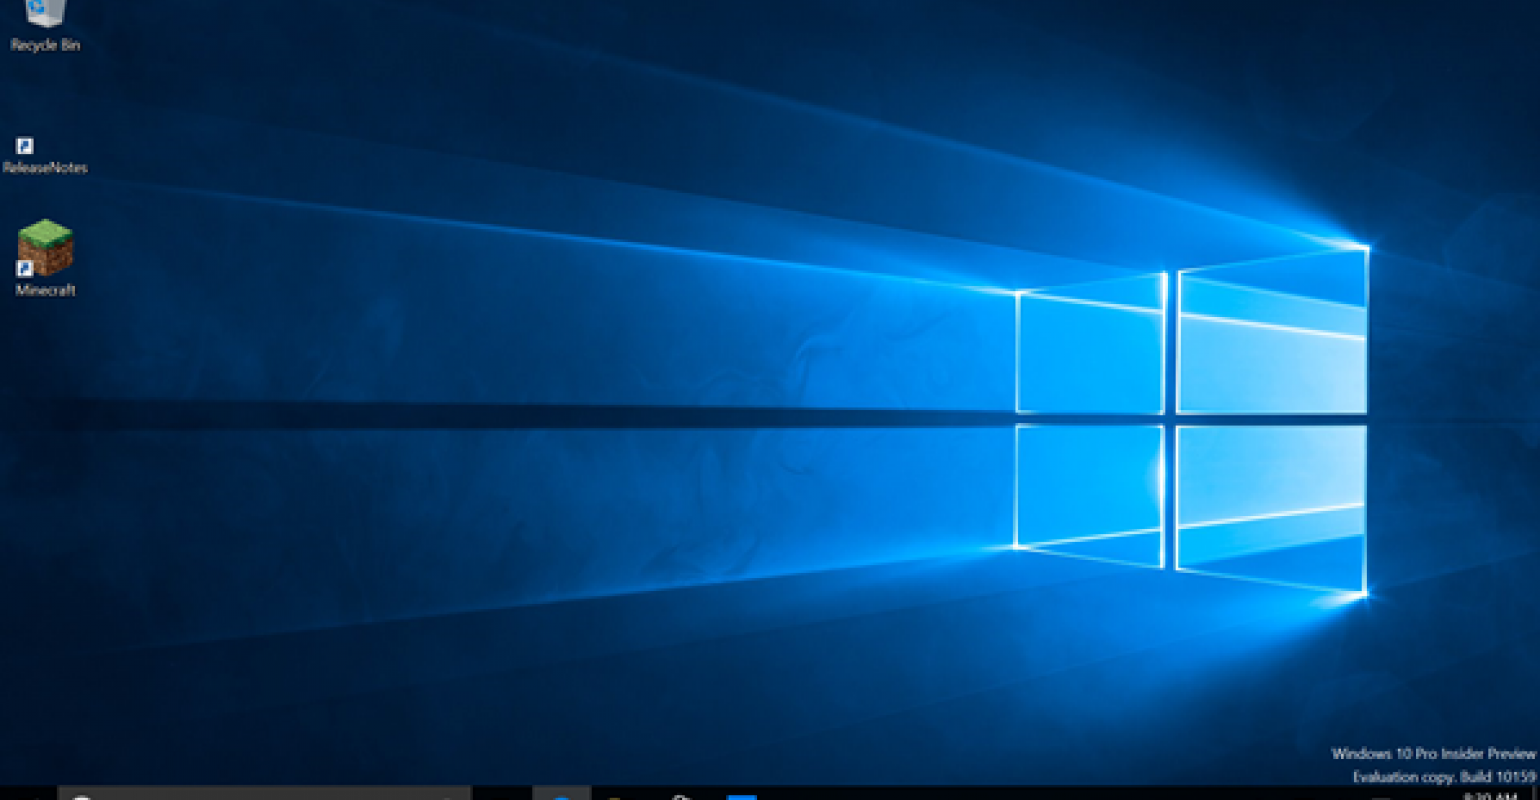 How To Turn the Desktop Background Image On and Off in Windows 10 1540x800